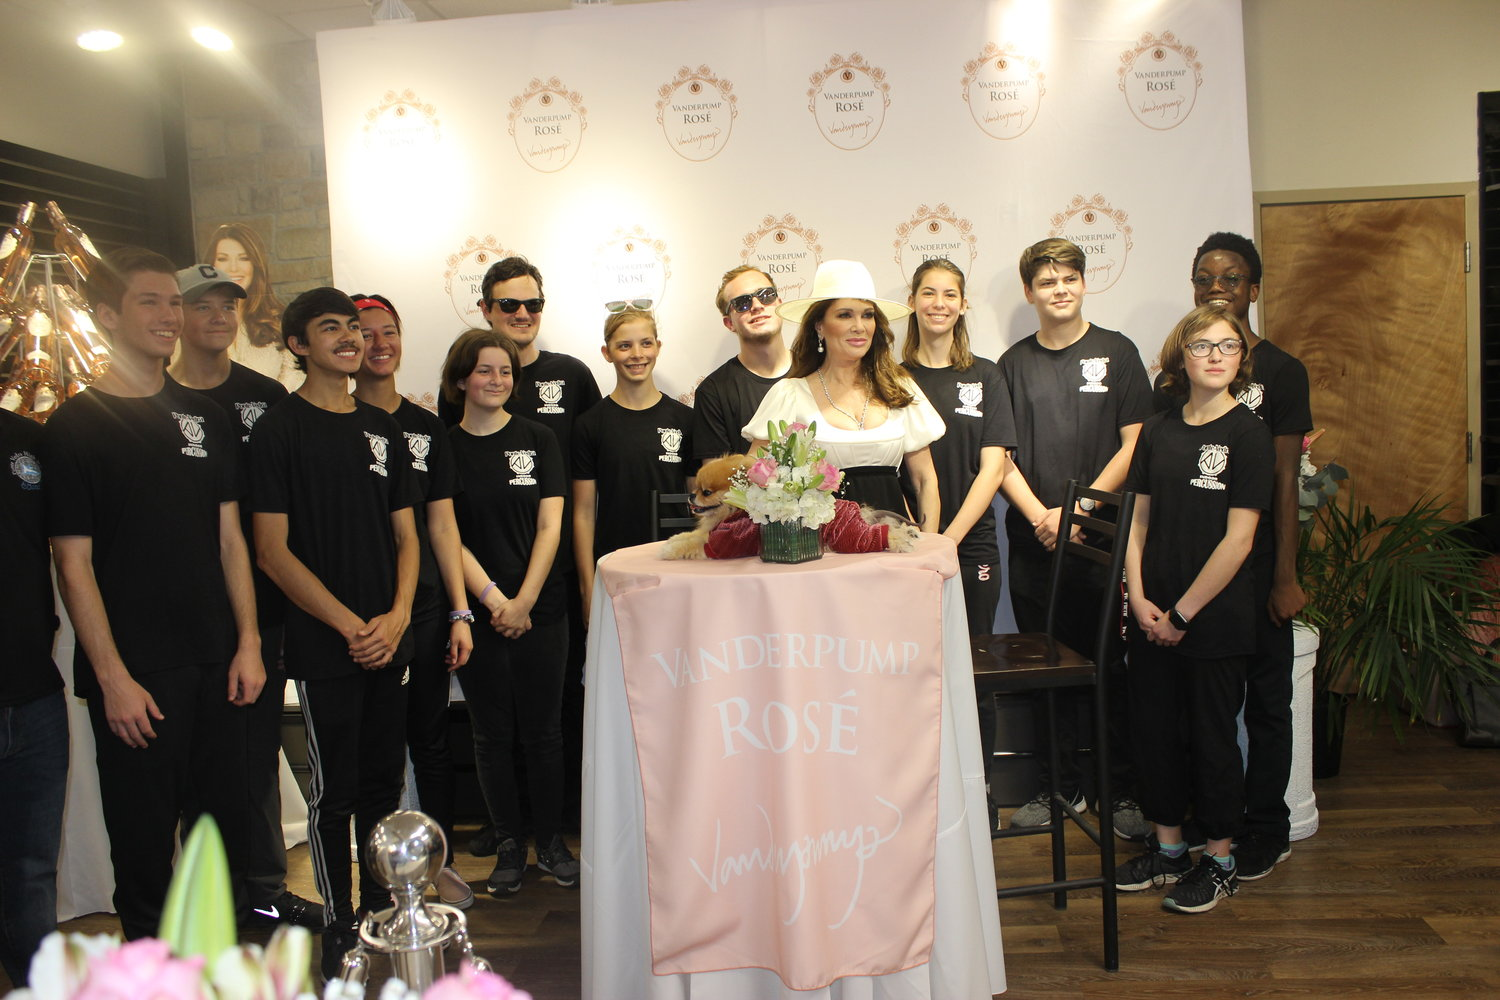 Television star Lisa Vanderpump gathers with the Ponte Vedra High School band on March 9 at Winn-Dixie in Ponte Vedra Beach, where she met with fans and introduced her Vanderpump Rosé.